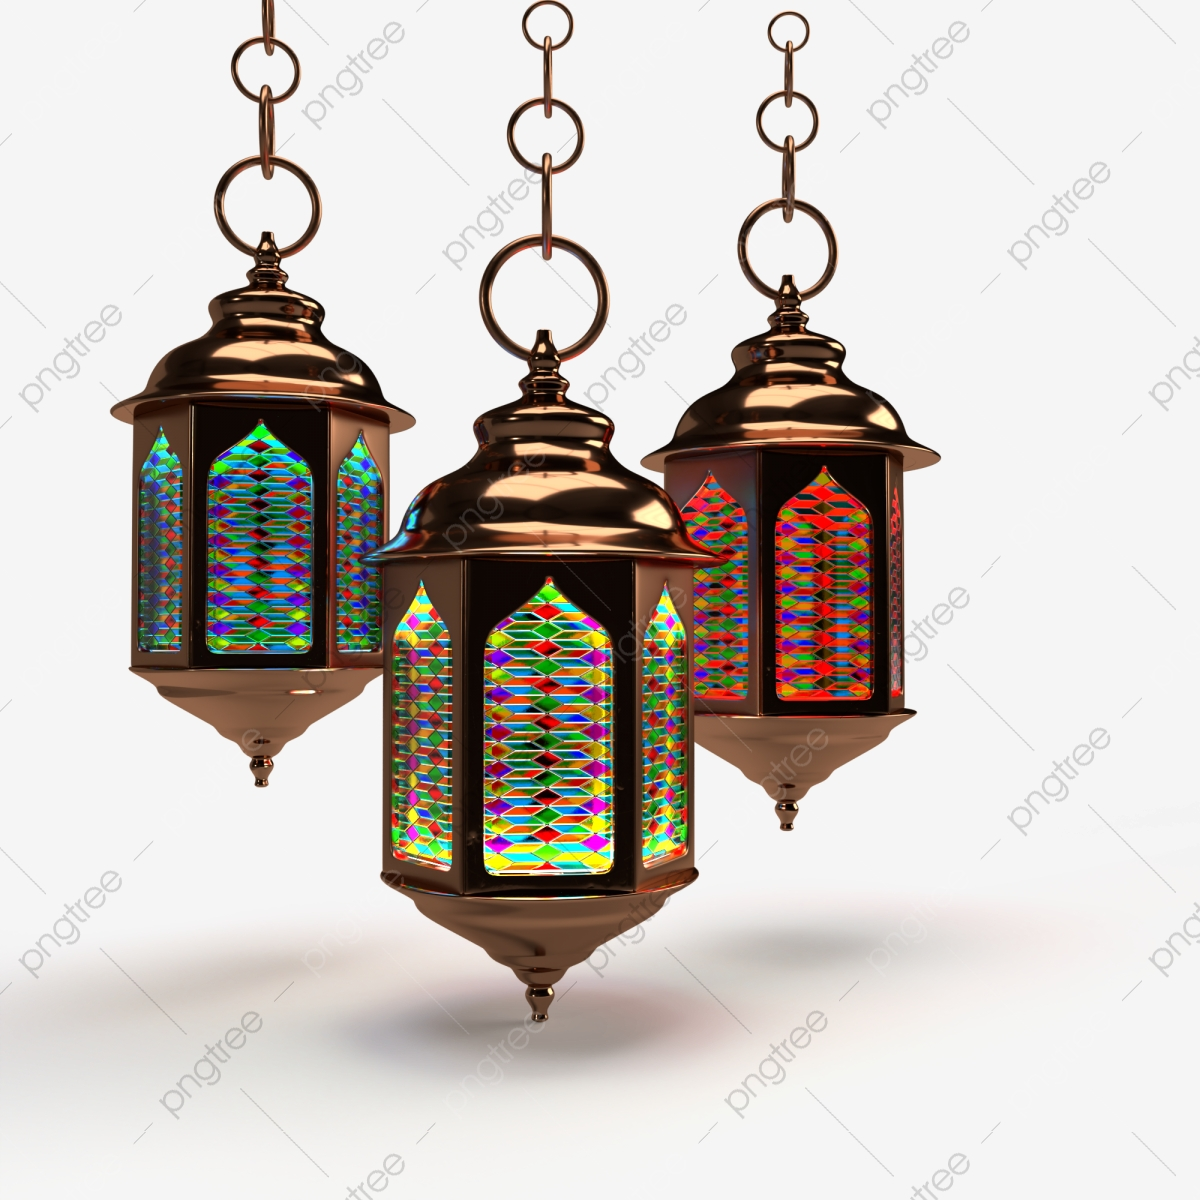 lamp png images vector and psd files free download on pngtree https pngtree com freepng eid mubarak ramadan kareem islamic muslim holiday background with lantern or lamp 5333663 html